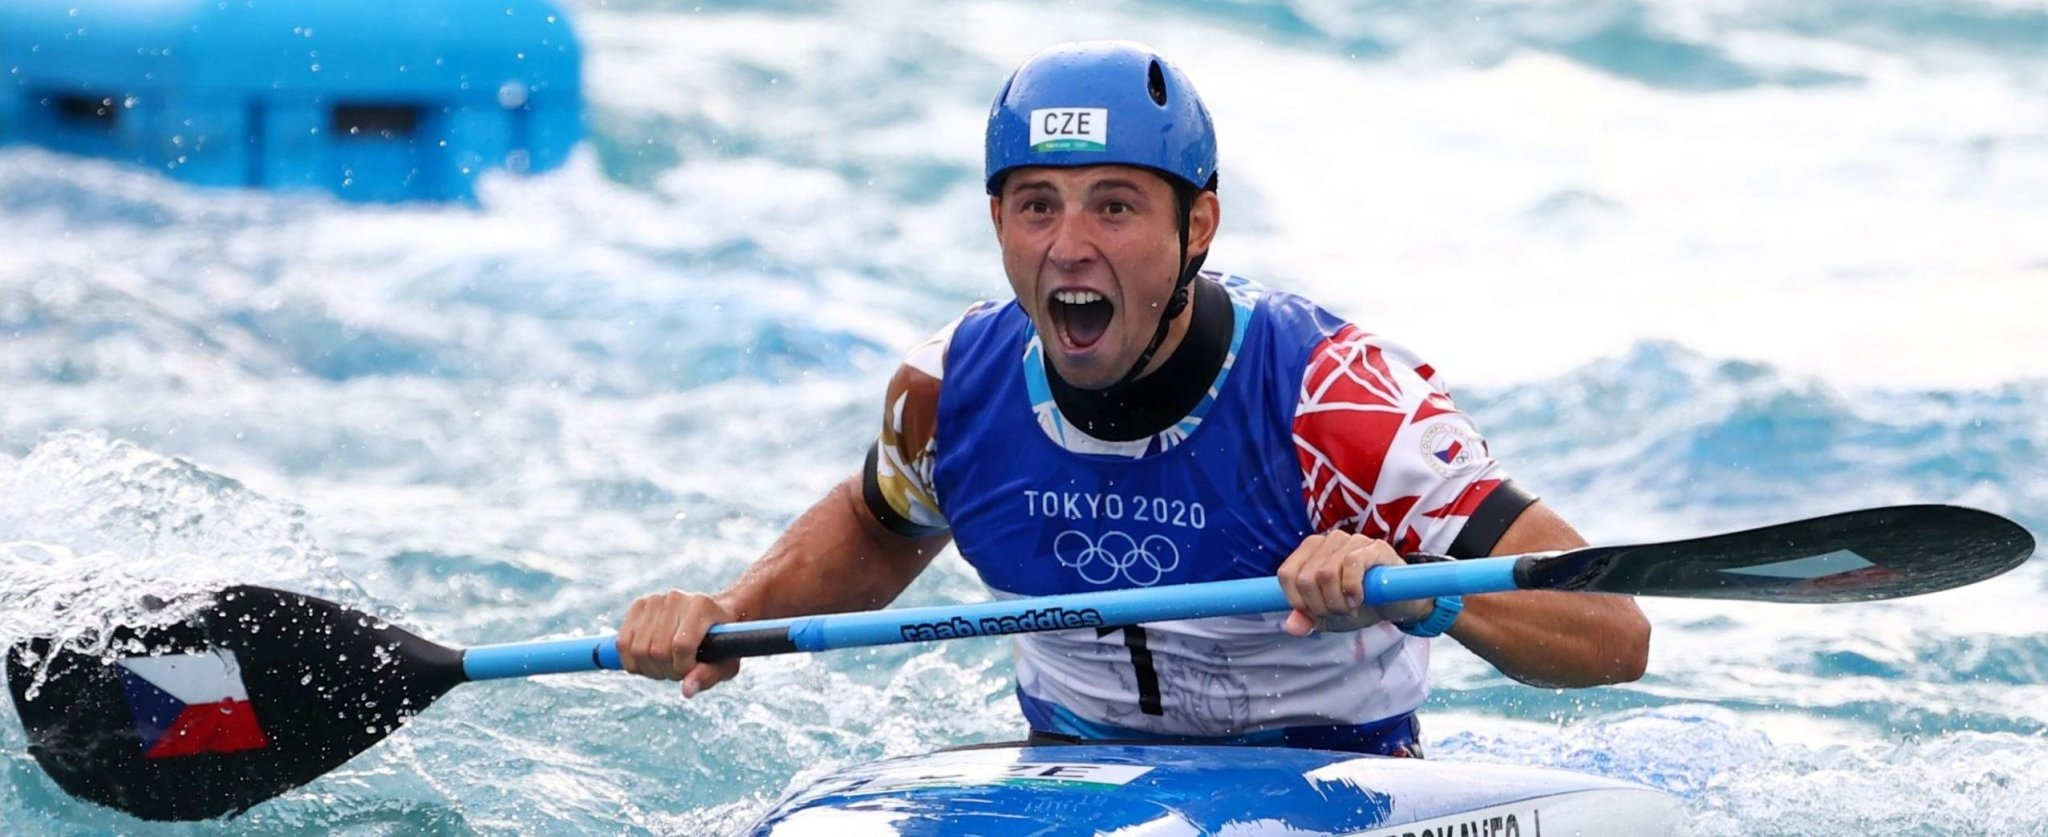 Olympics-Canoeing-Prskavec eases Rio heartache with kayak slalom gold